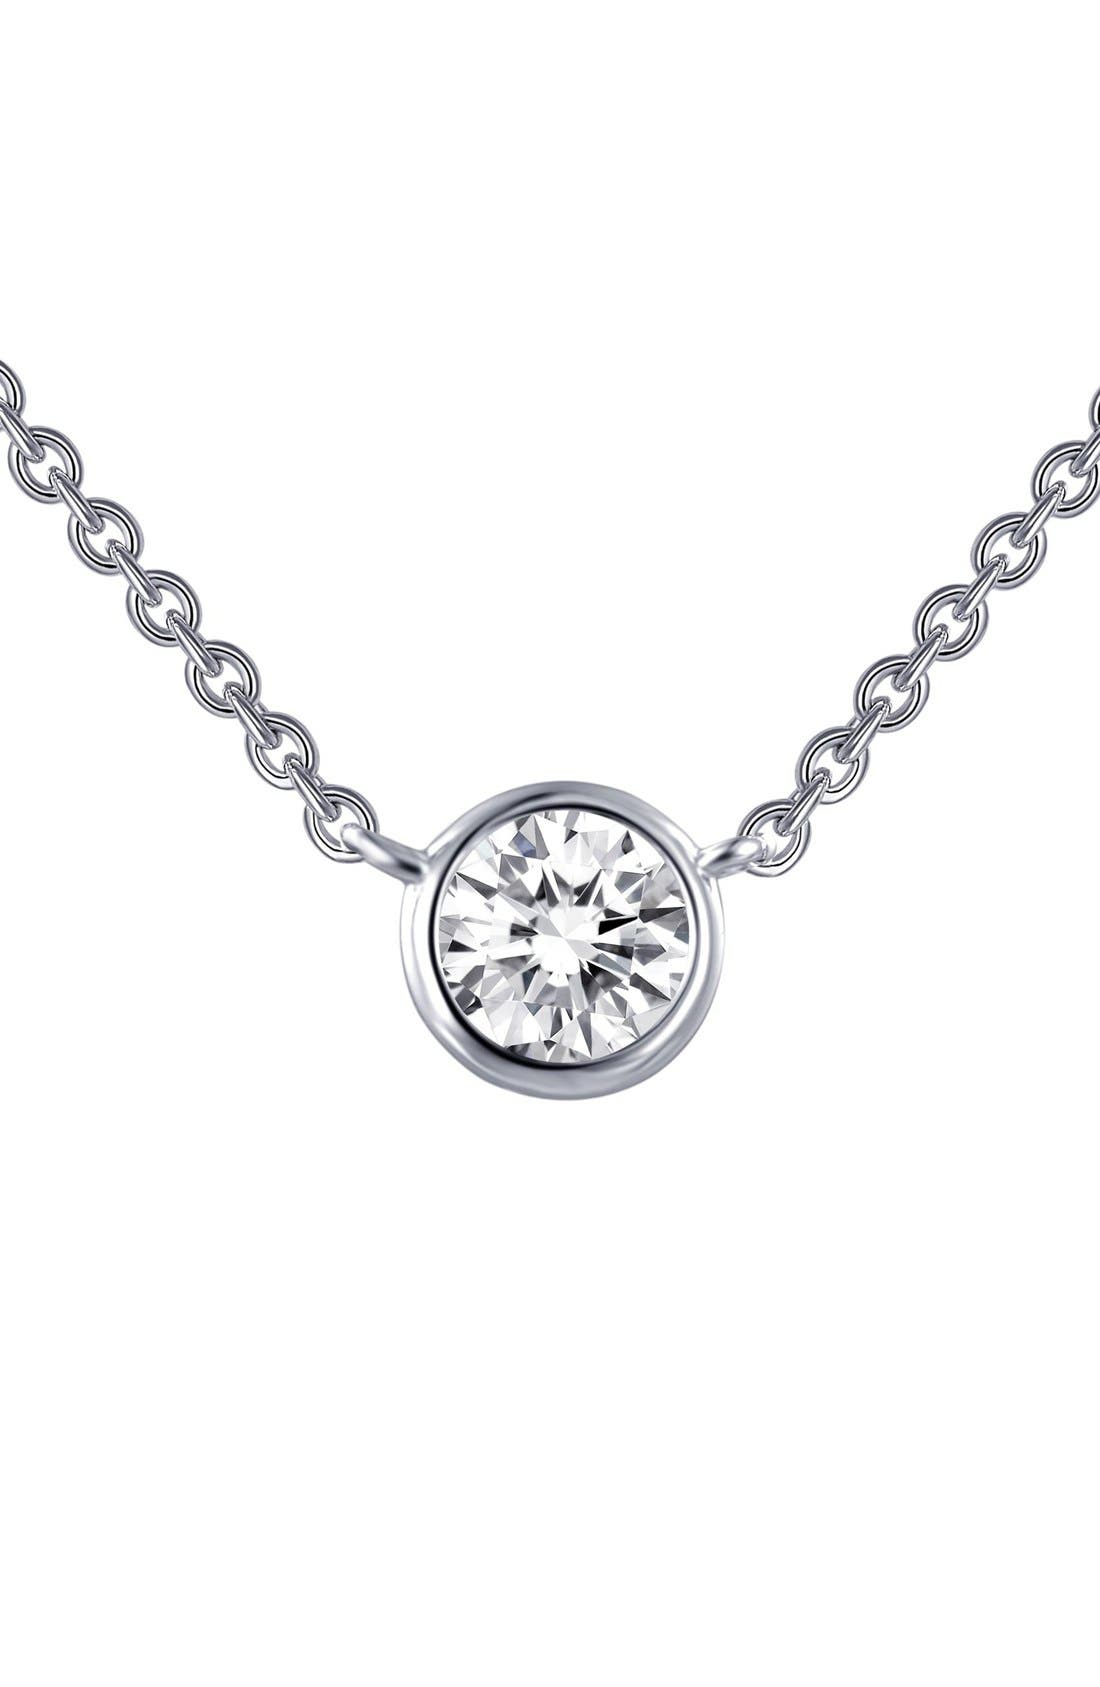 Simulated Diamond Pendant Necklace,                         Main,                         color, Silver/ Clear